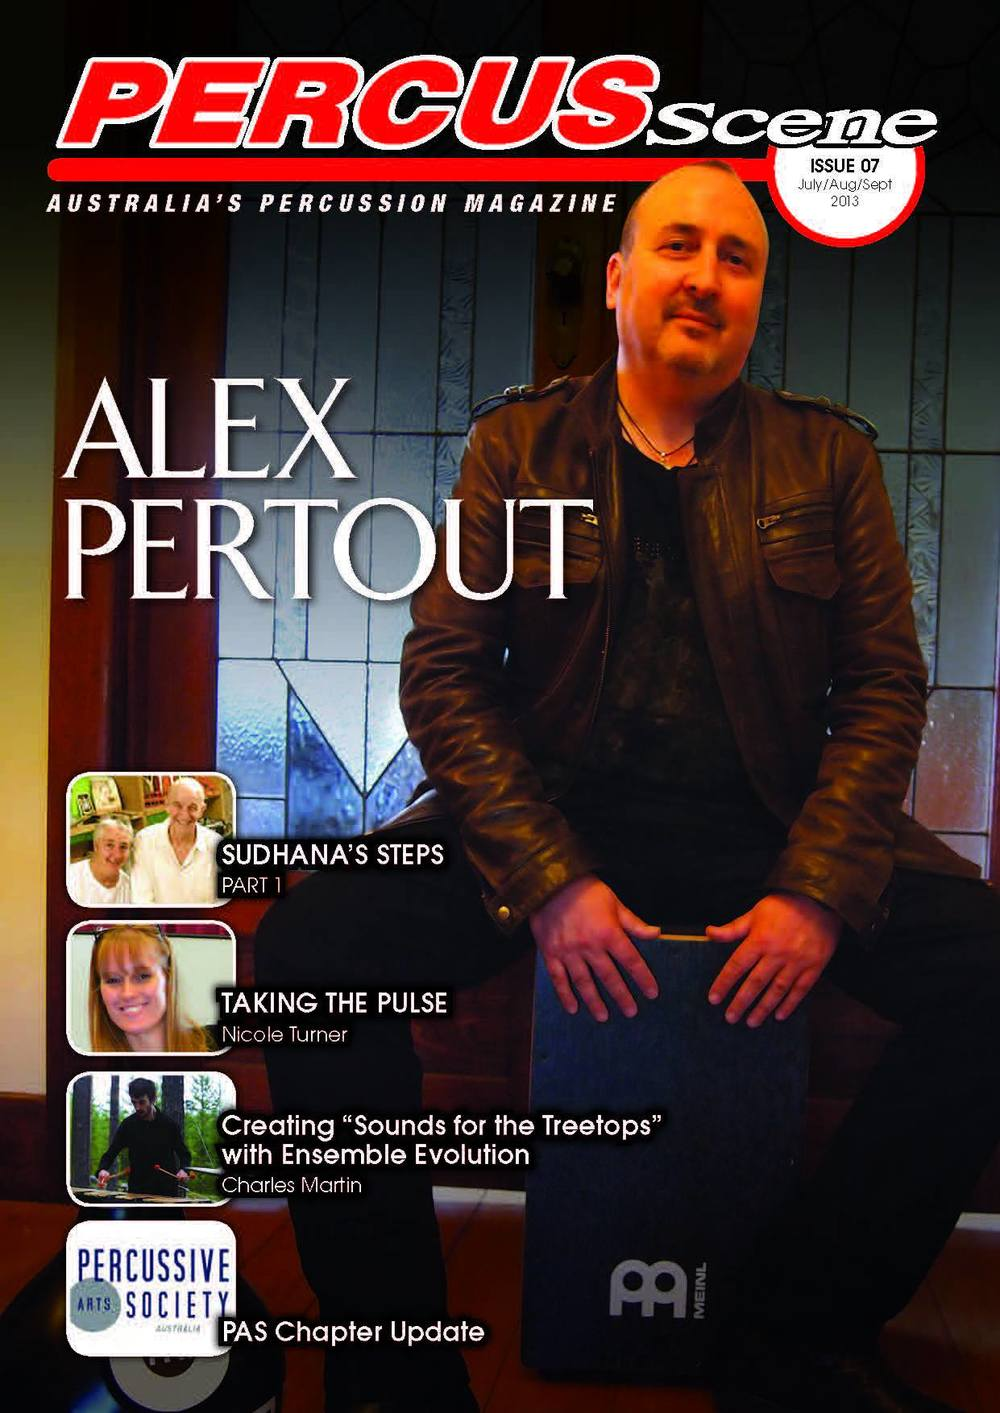 PERCUSscene Issue 07 Cover.jpg